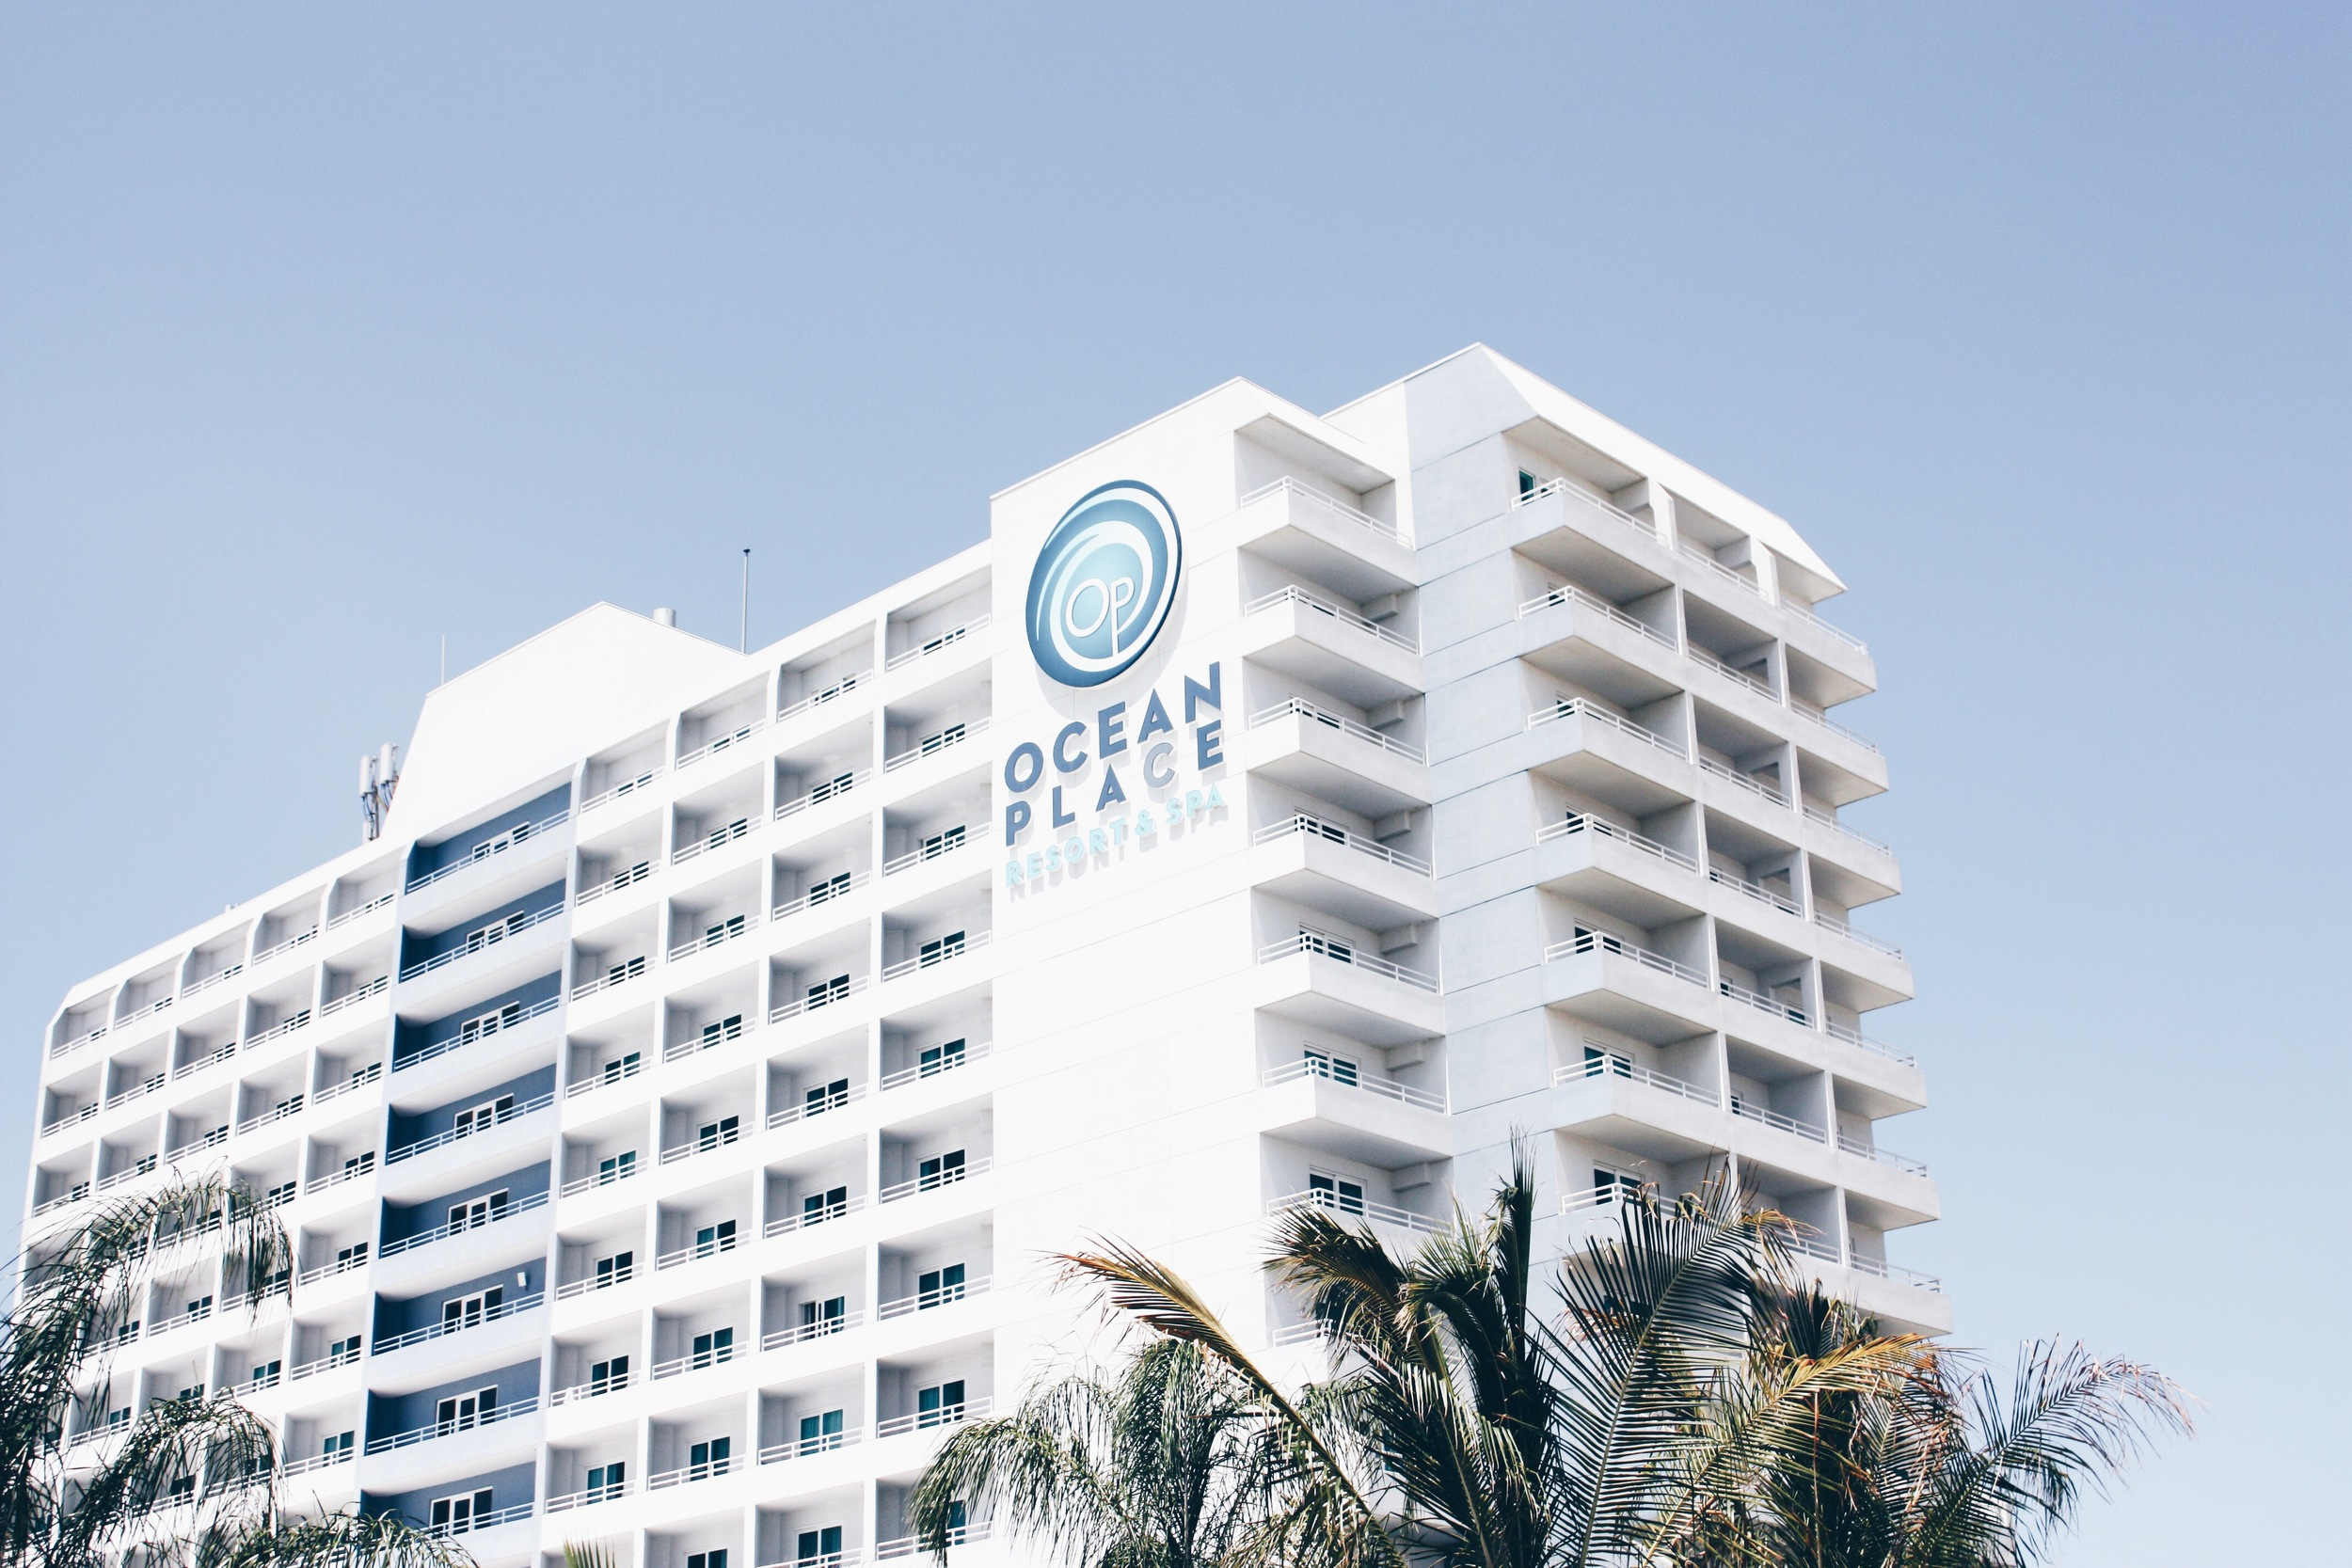 sam-c-perry-travel-long-branch-beach-ocean-place-resort-spa-hotel.jpg